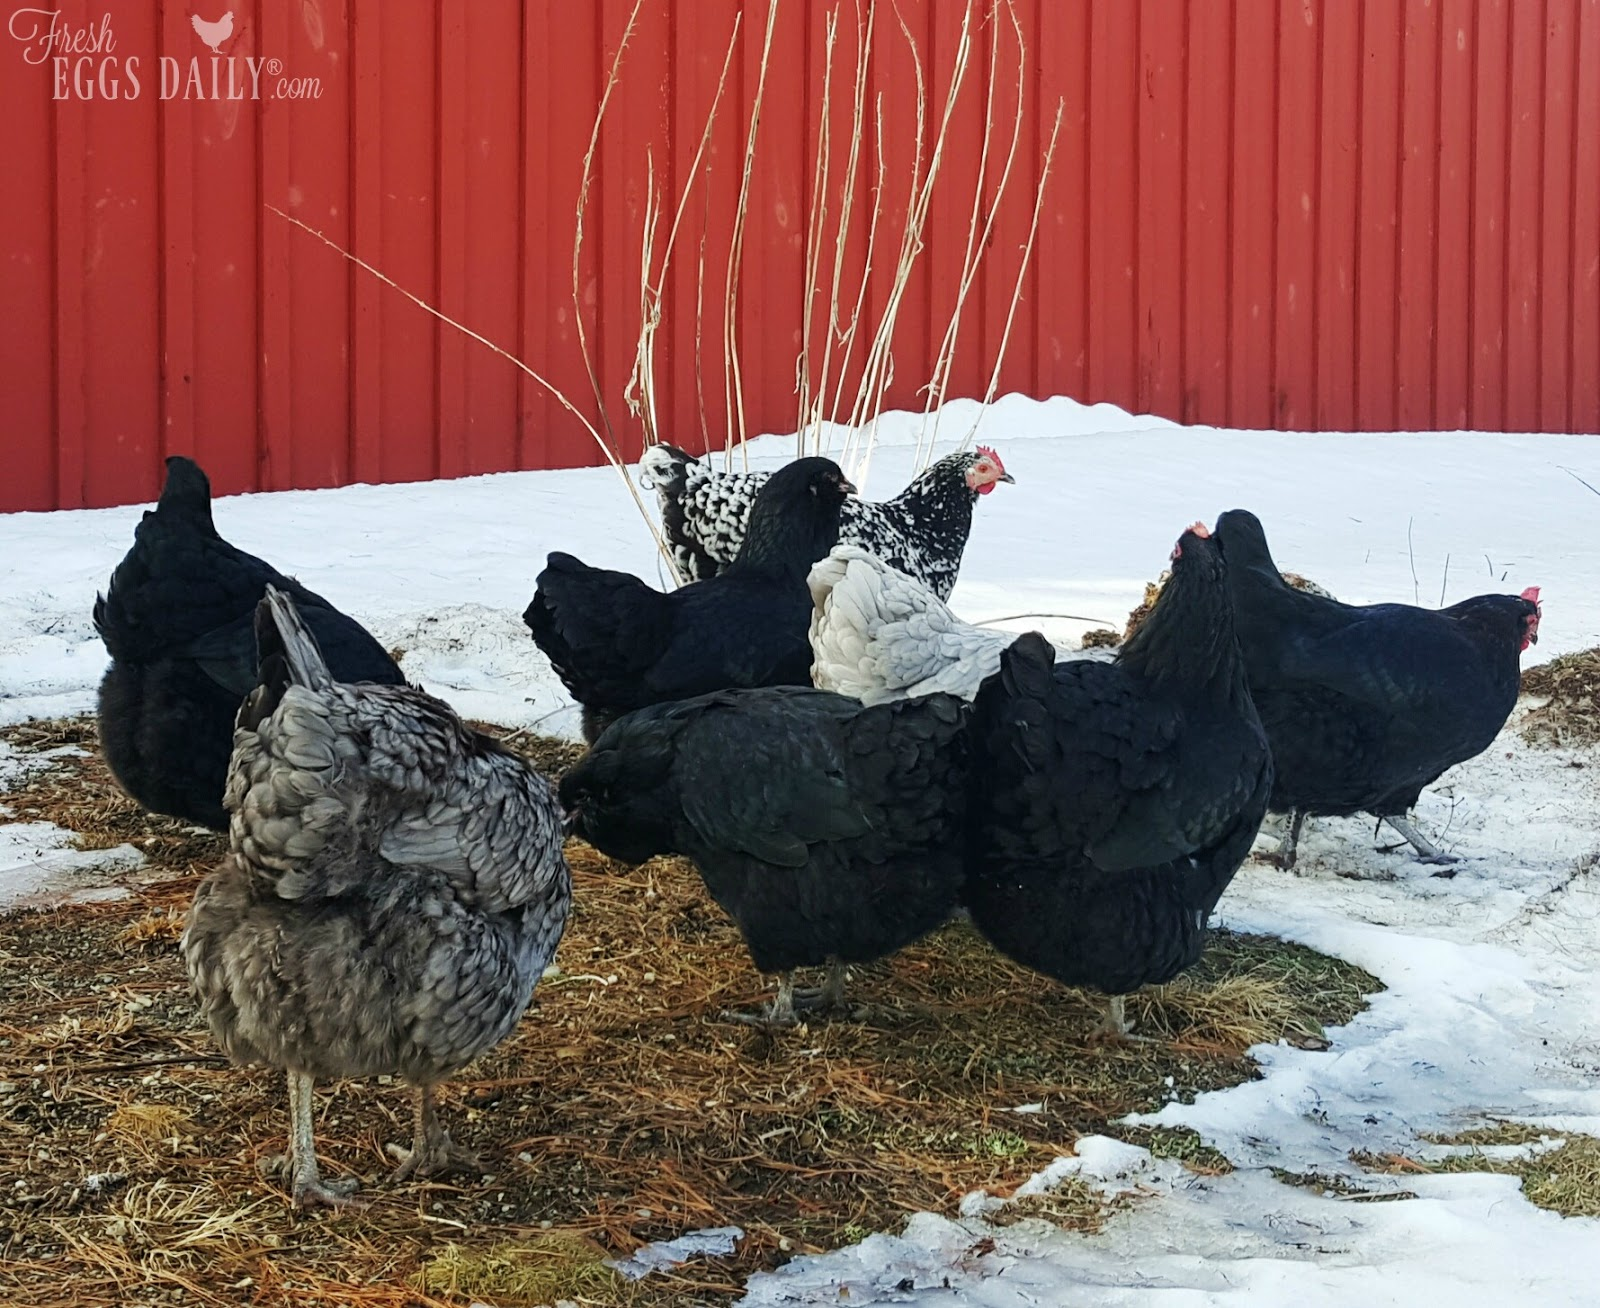 how do chickens stay warm in the winter fresh eggs daily